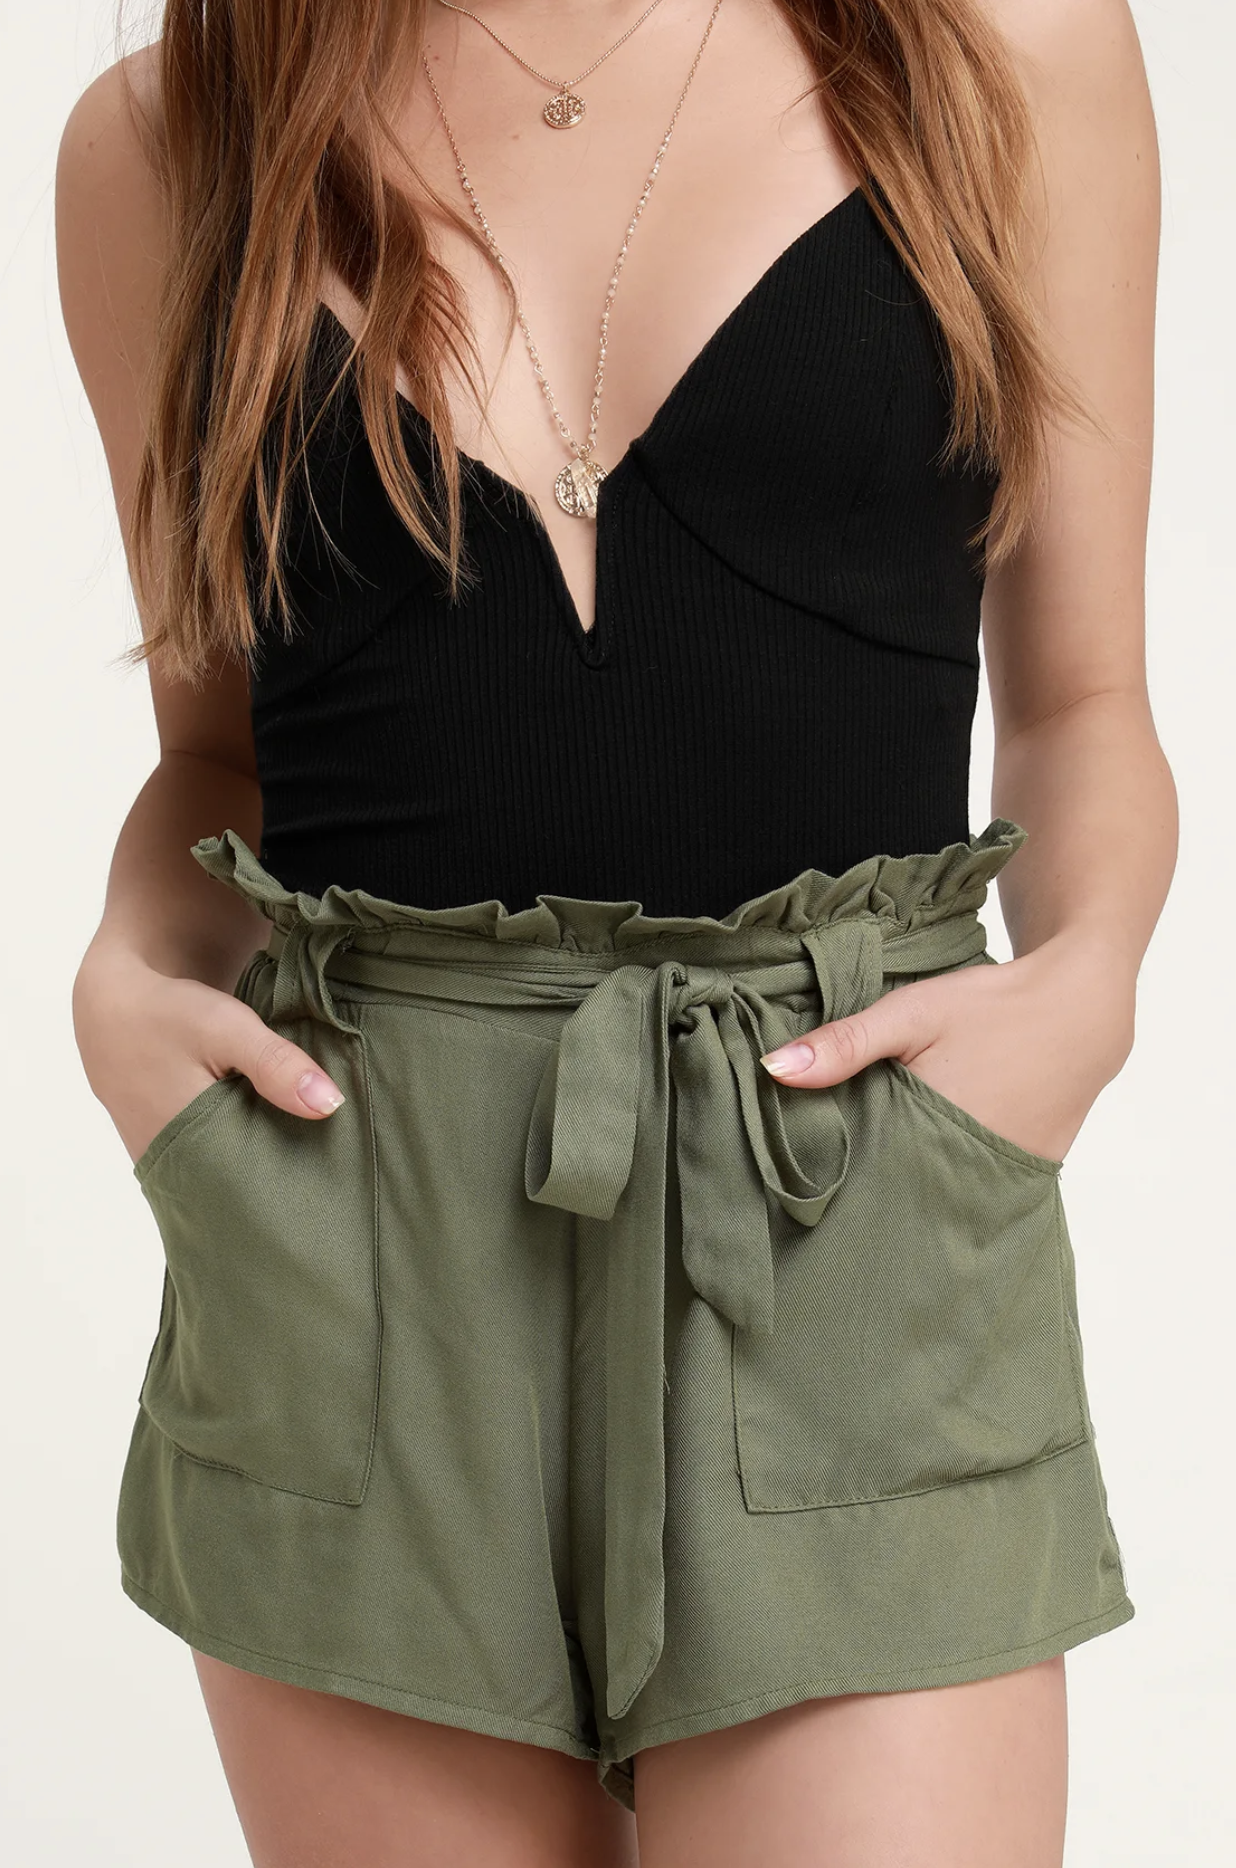 You will be warm-weather ready in your Jack by BB Dakota Belt It Out Olive Green Paper Bag Waist Shorts! Lightweight woven twill forms these vacation-ready shorts with a relaxed fit, cute high paper-bag waist and oversized utility pockets. Removable waist belt allows you to cinch the elasticized waist for a custom fit. Faux button pockets on back.